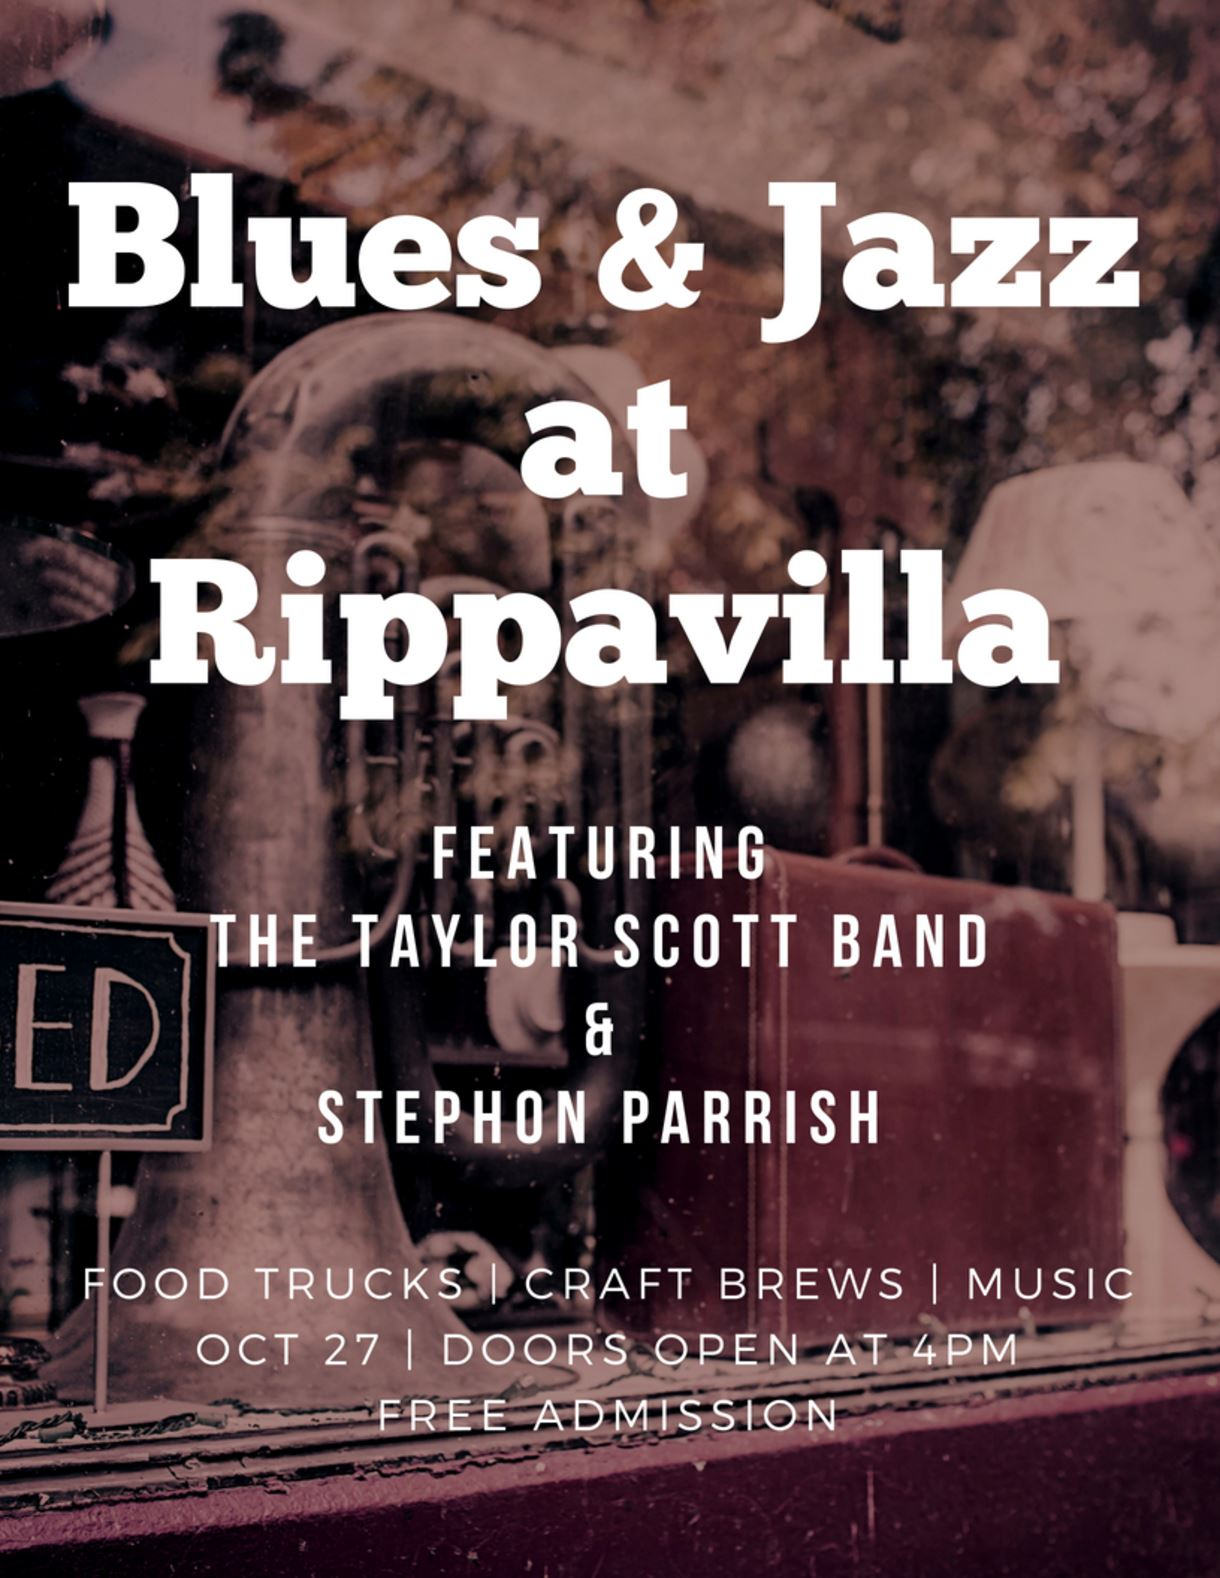 Blues and Jazz at Rippavilla